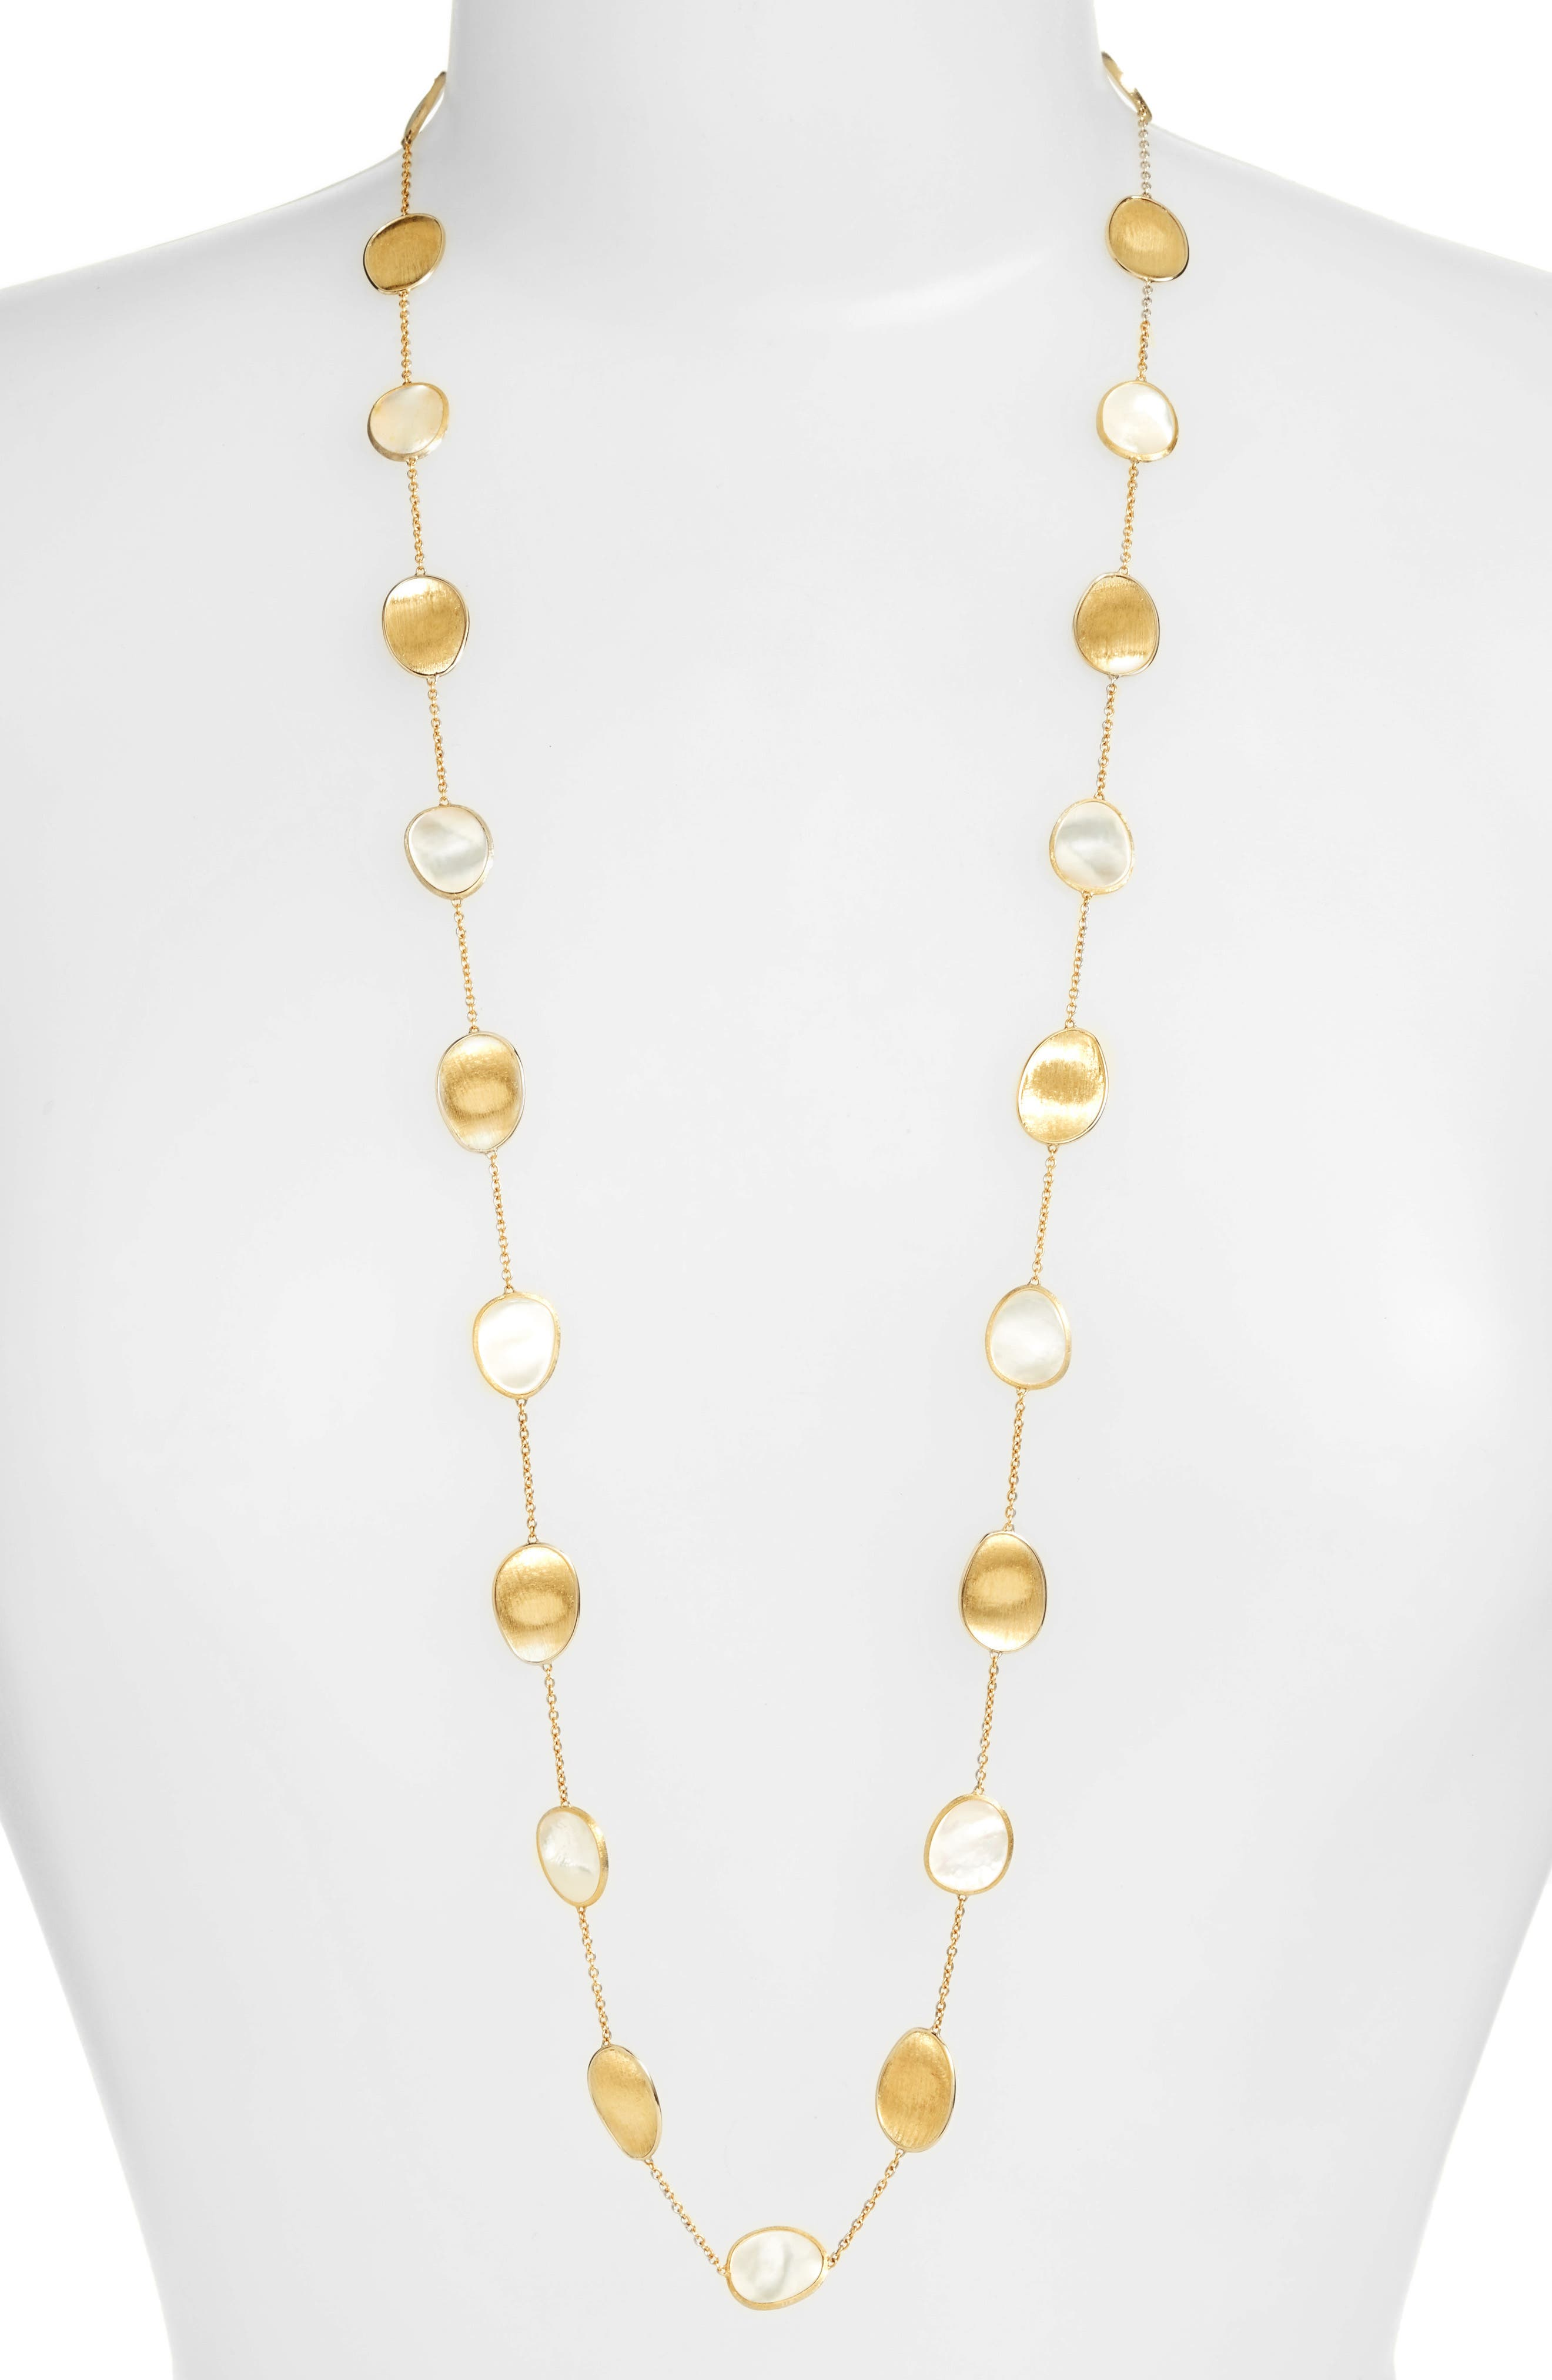 Lunaria Mother of Pearl Long Strand Necklace,                         Main,                         color, WHITE MOTHER OF PEARL